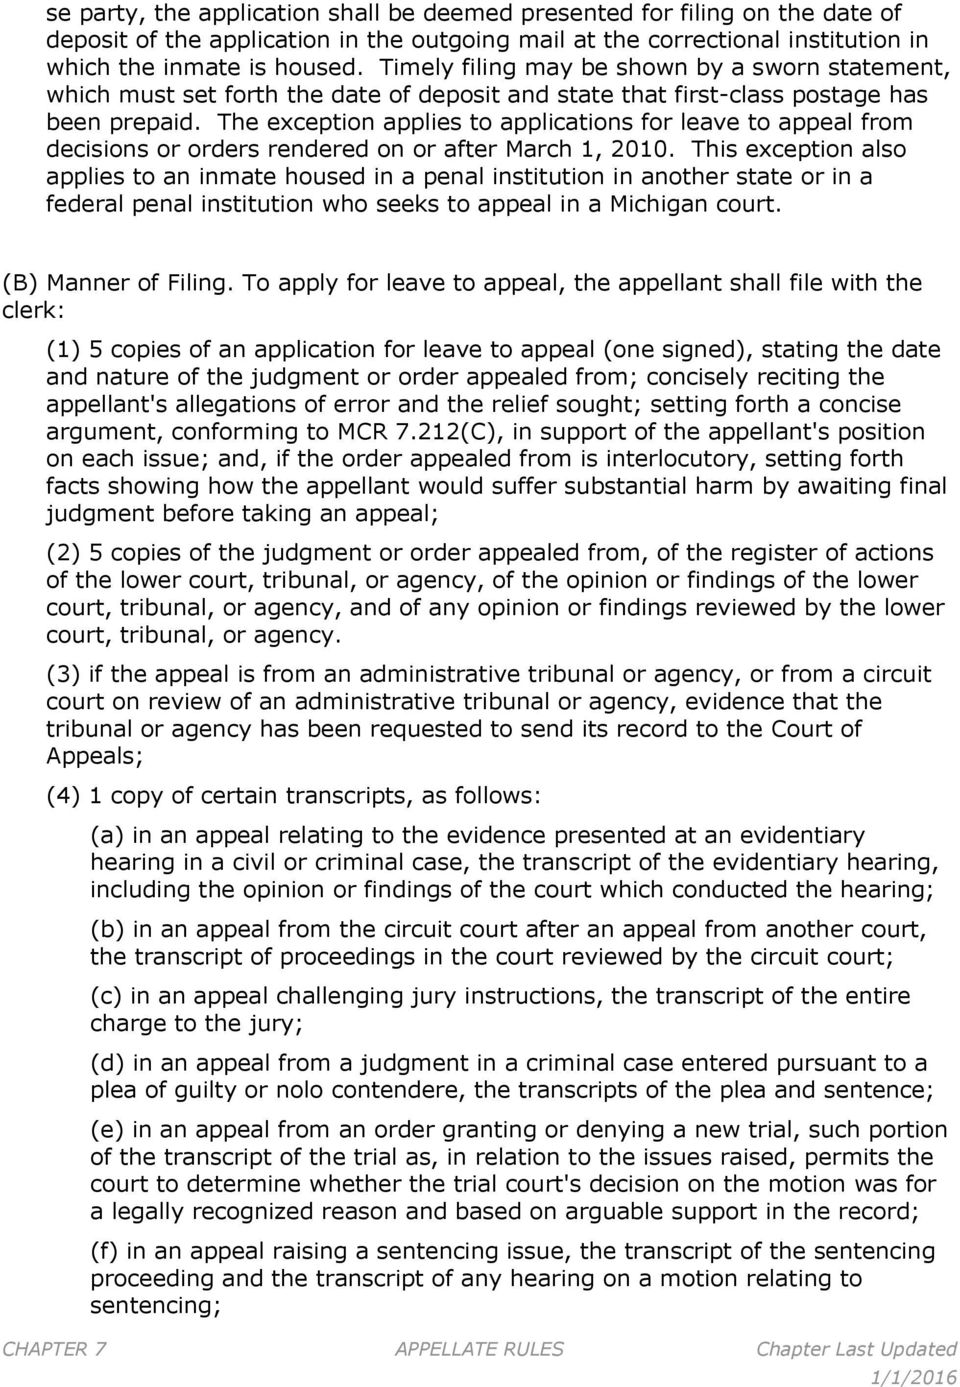 The exception applies to applications for leave to appeal from decisions or orders rendered on or after March 1, 2010.